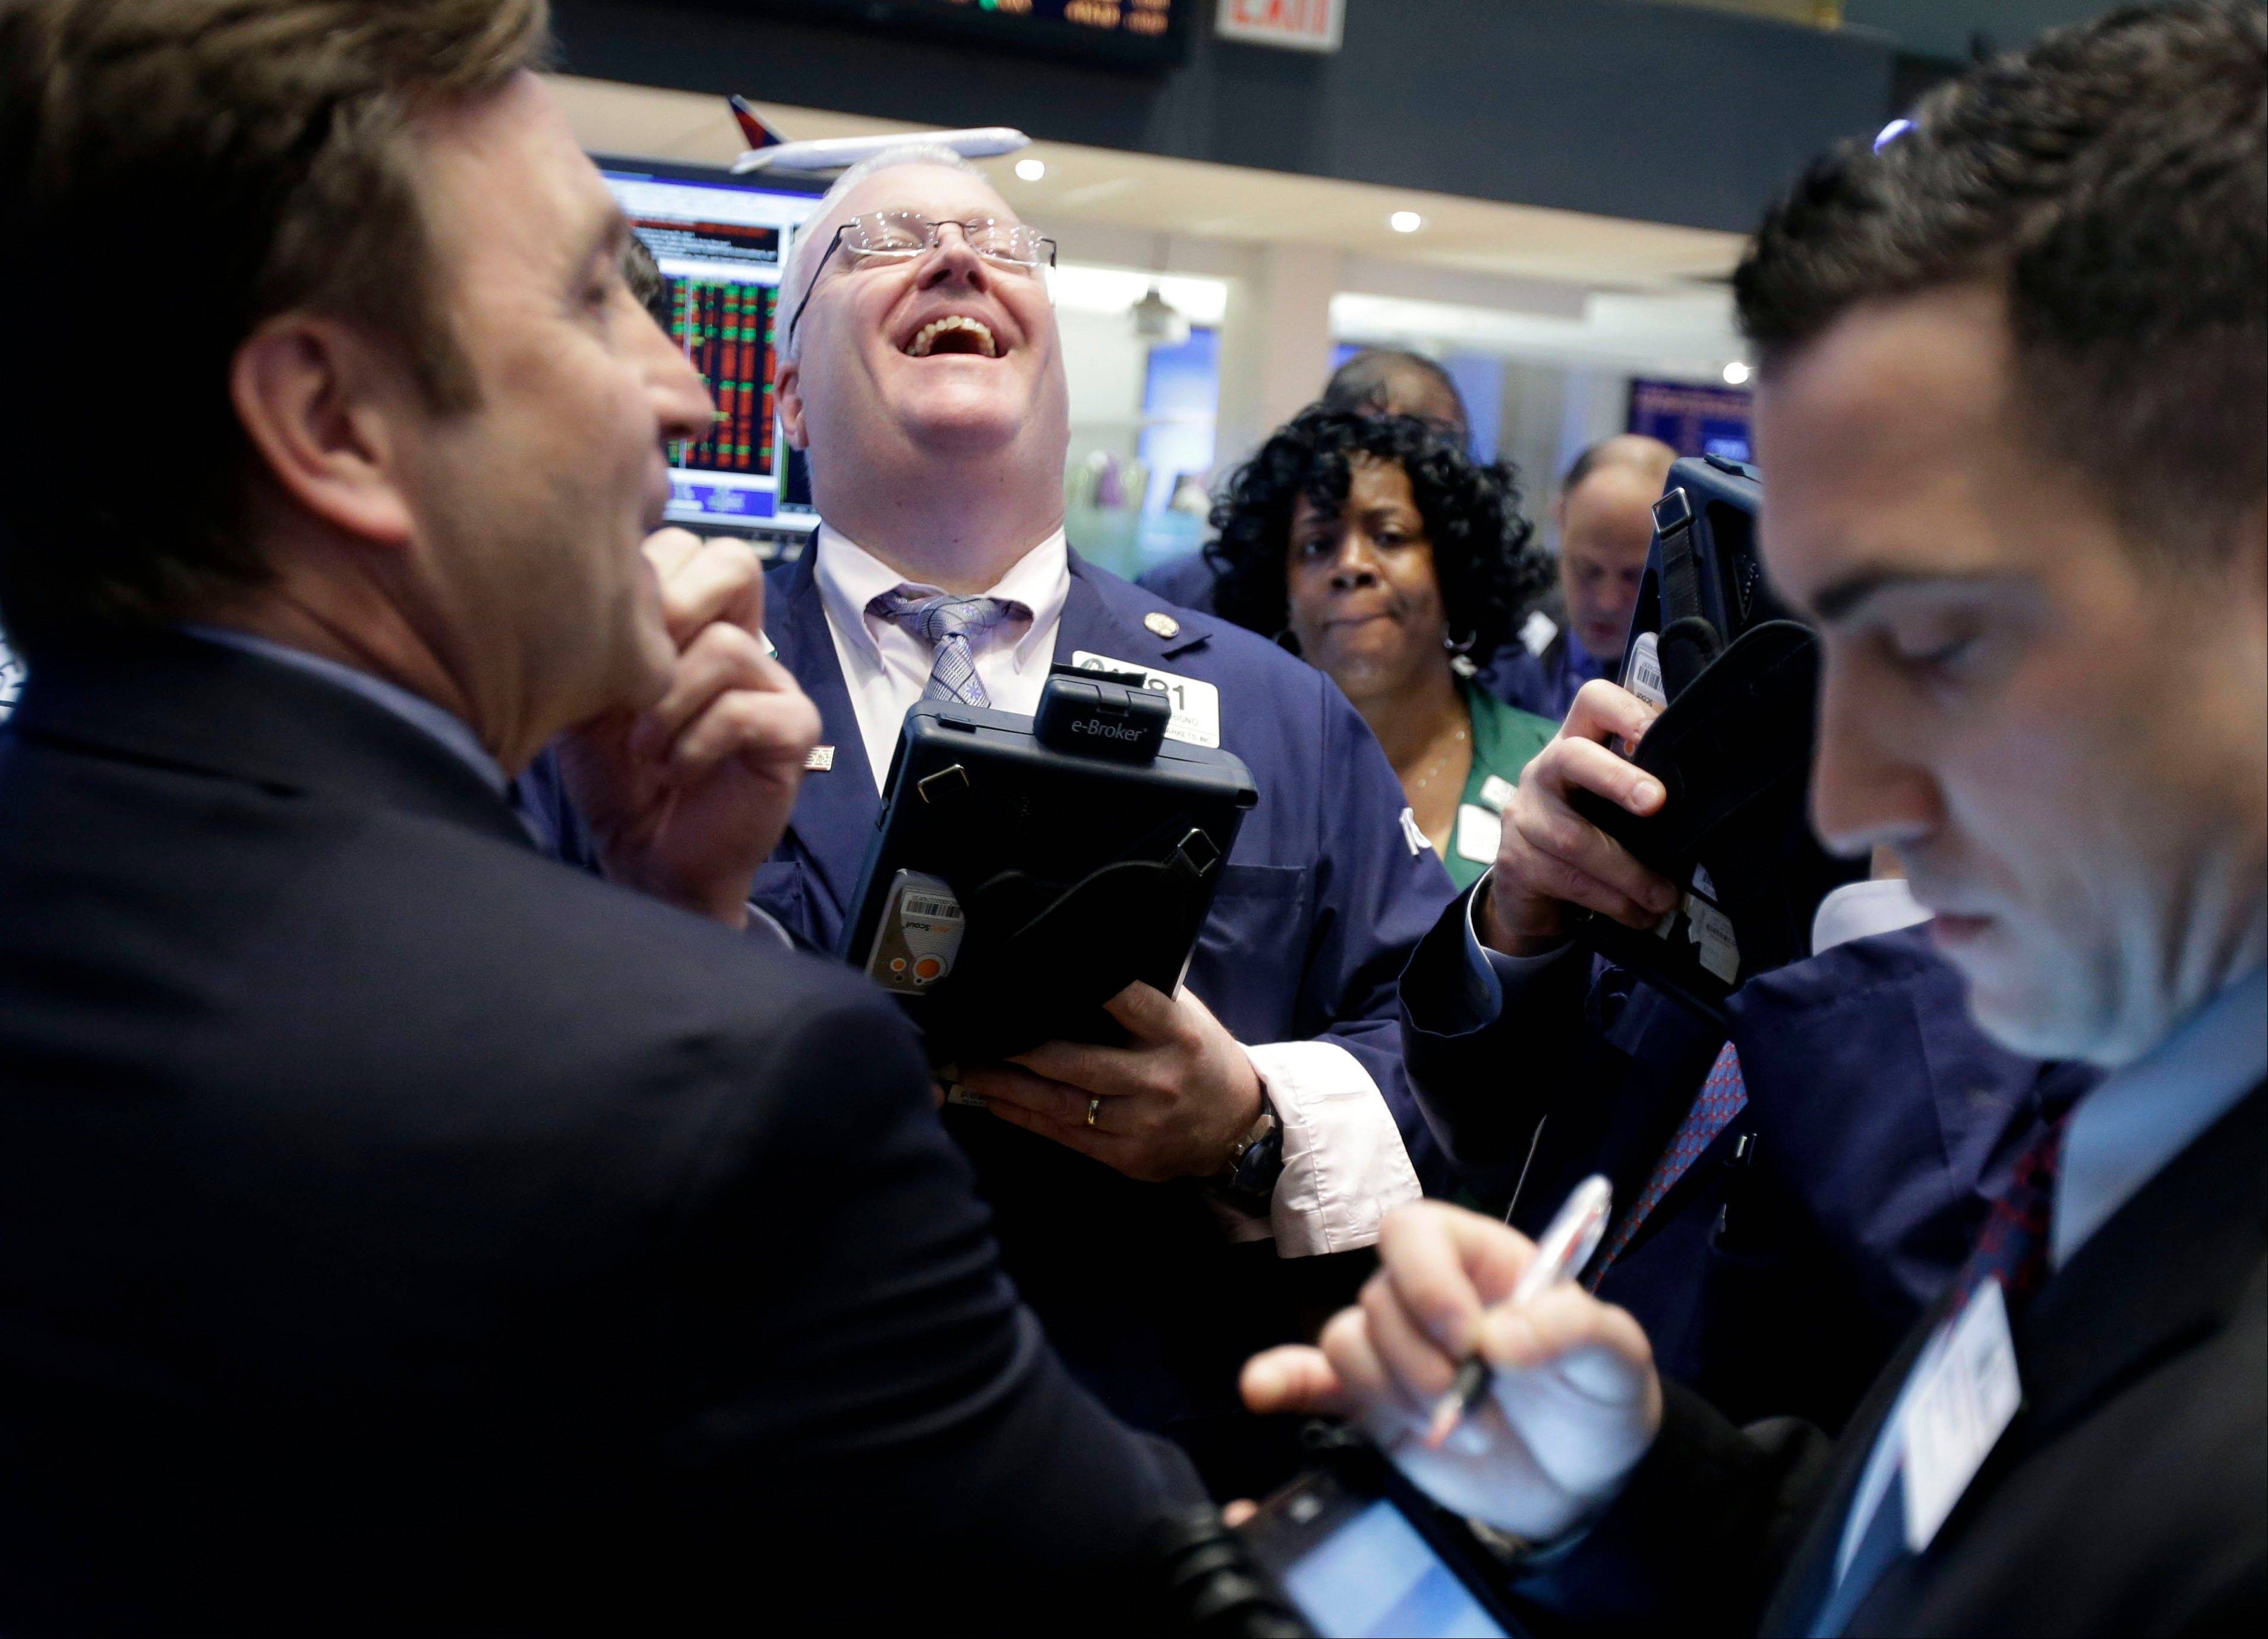 ASSOCIATED PRESS U.S. stocks fell, trimming the best January rally for the Dow Jones Industrial Average since 1994, on disappointing earnings as investors weighed economic data ahead of tomorrow�s jobs report.